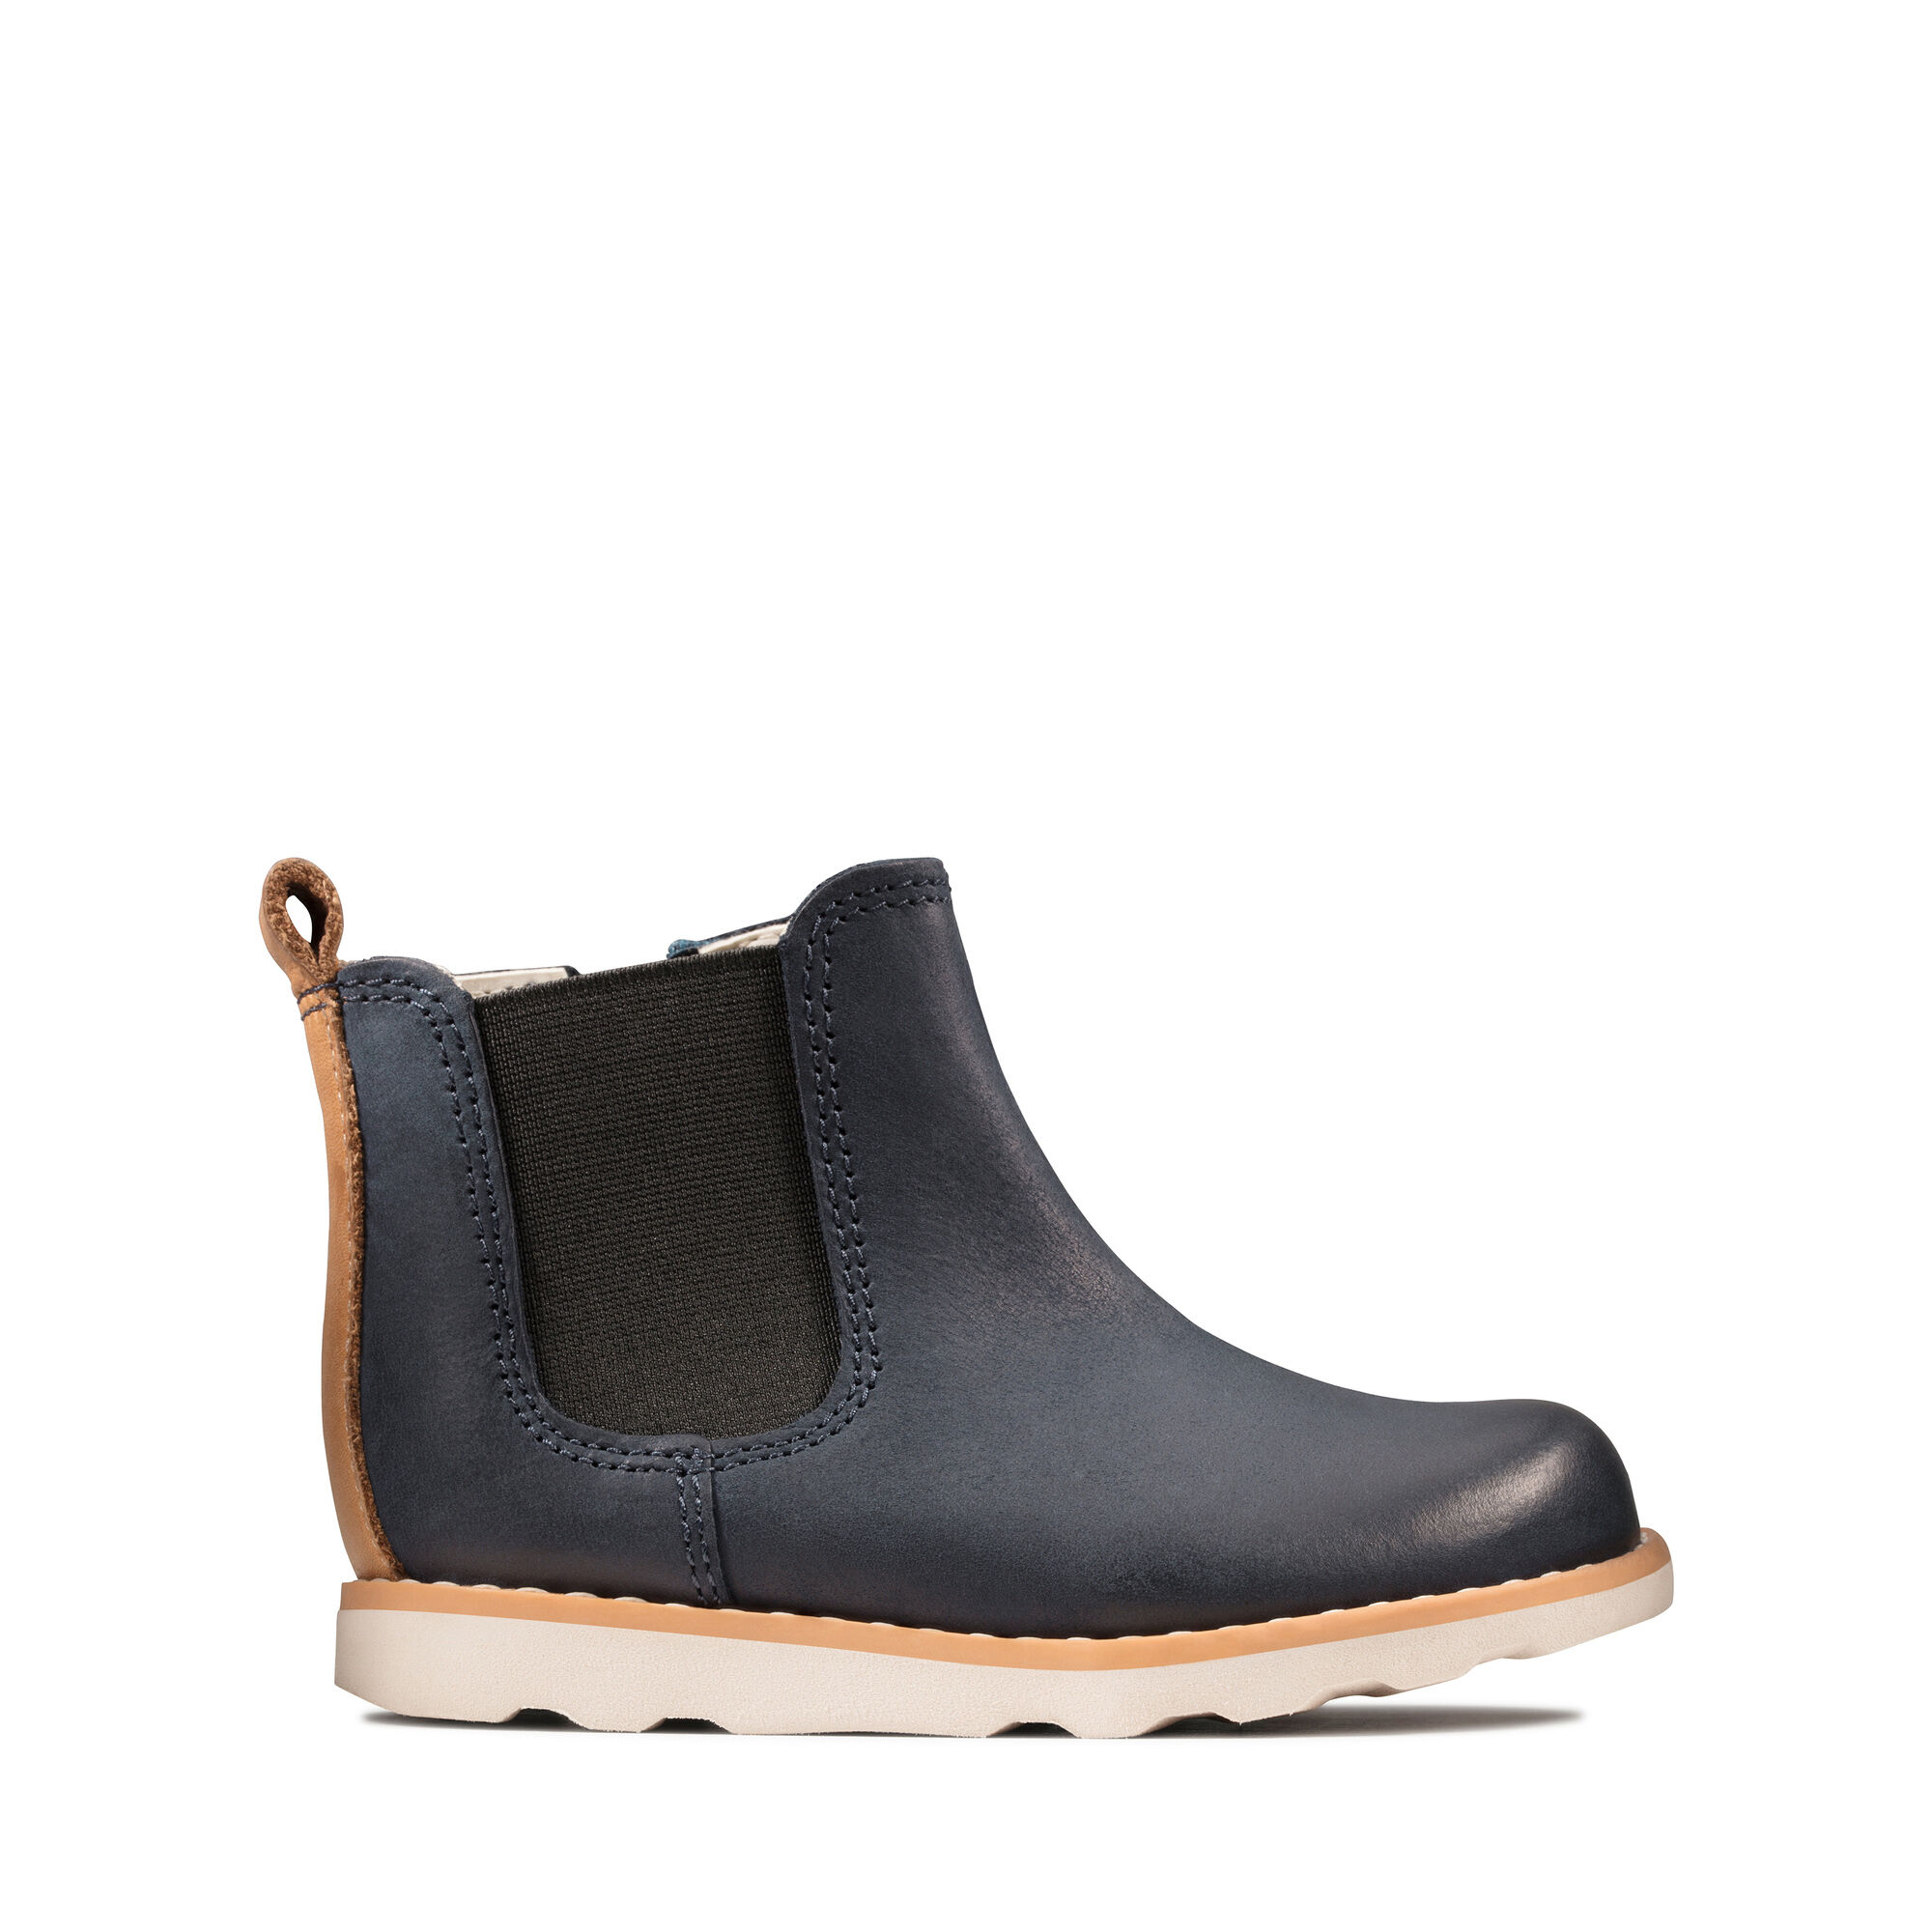 Boys' Navy Leather Boots - Crown Halo T